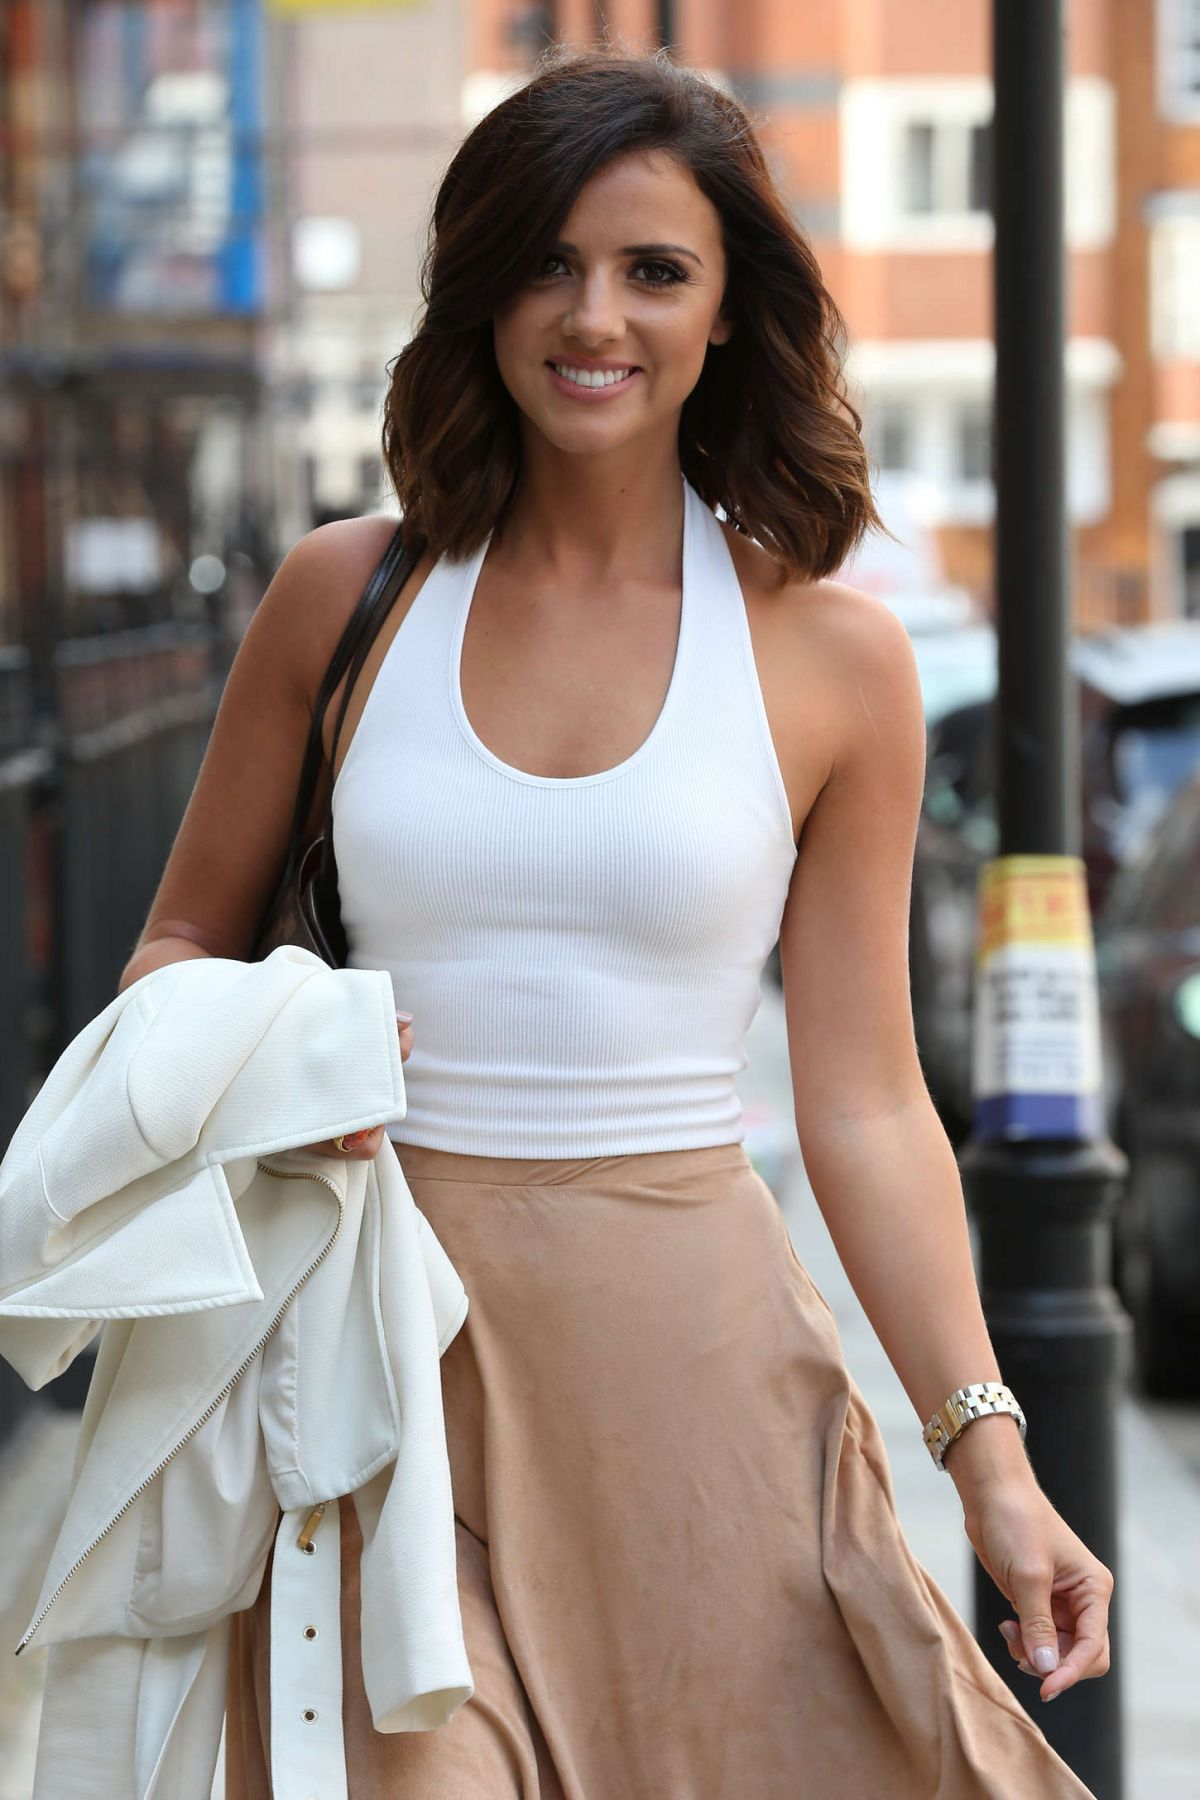 Pussy Fotos Lucy Mecklenburgh naked photo 2017